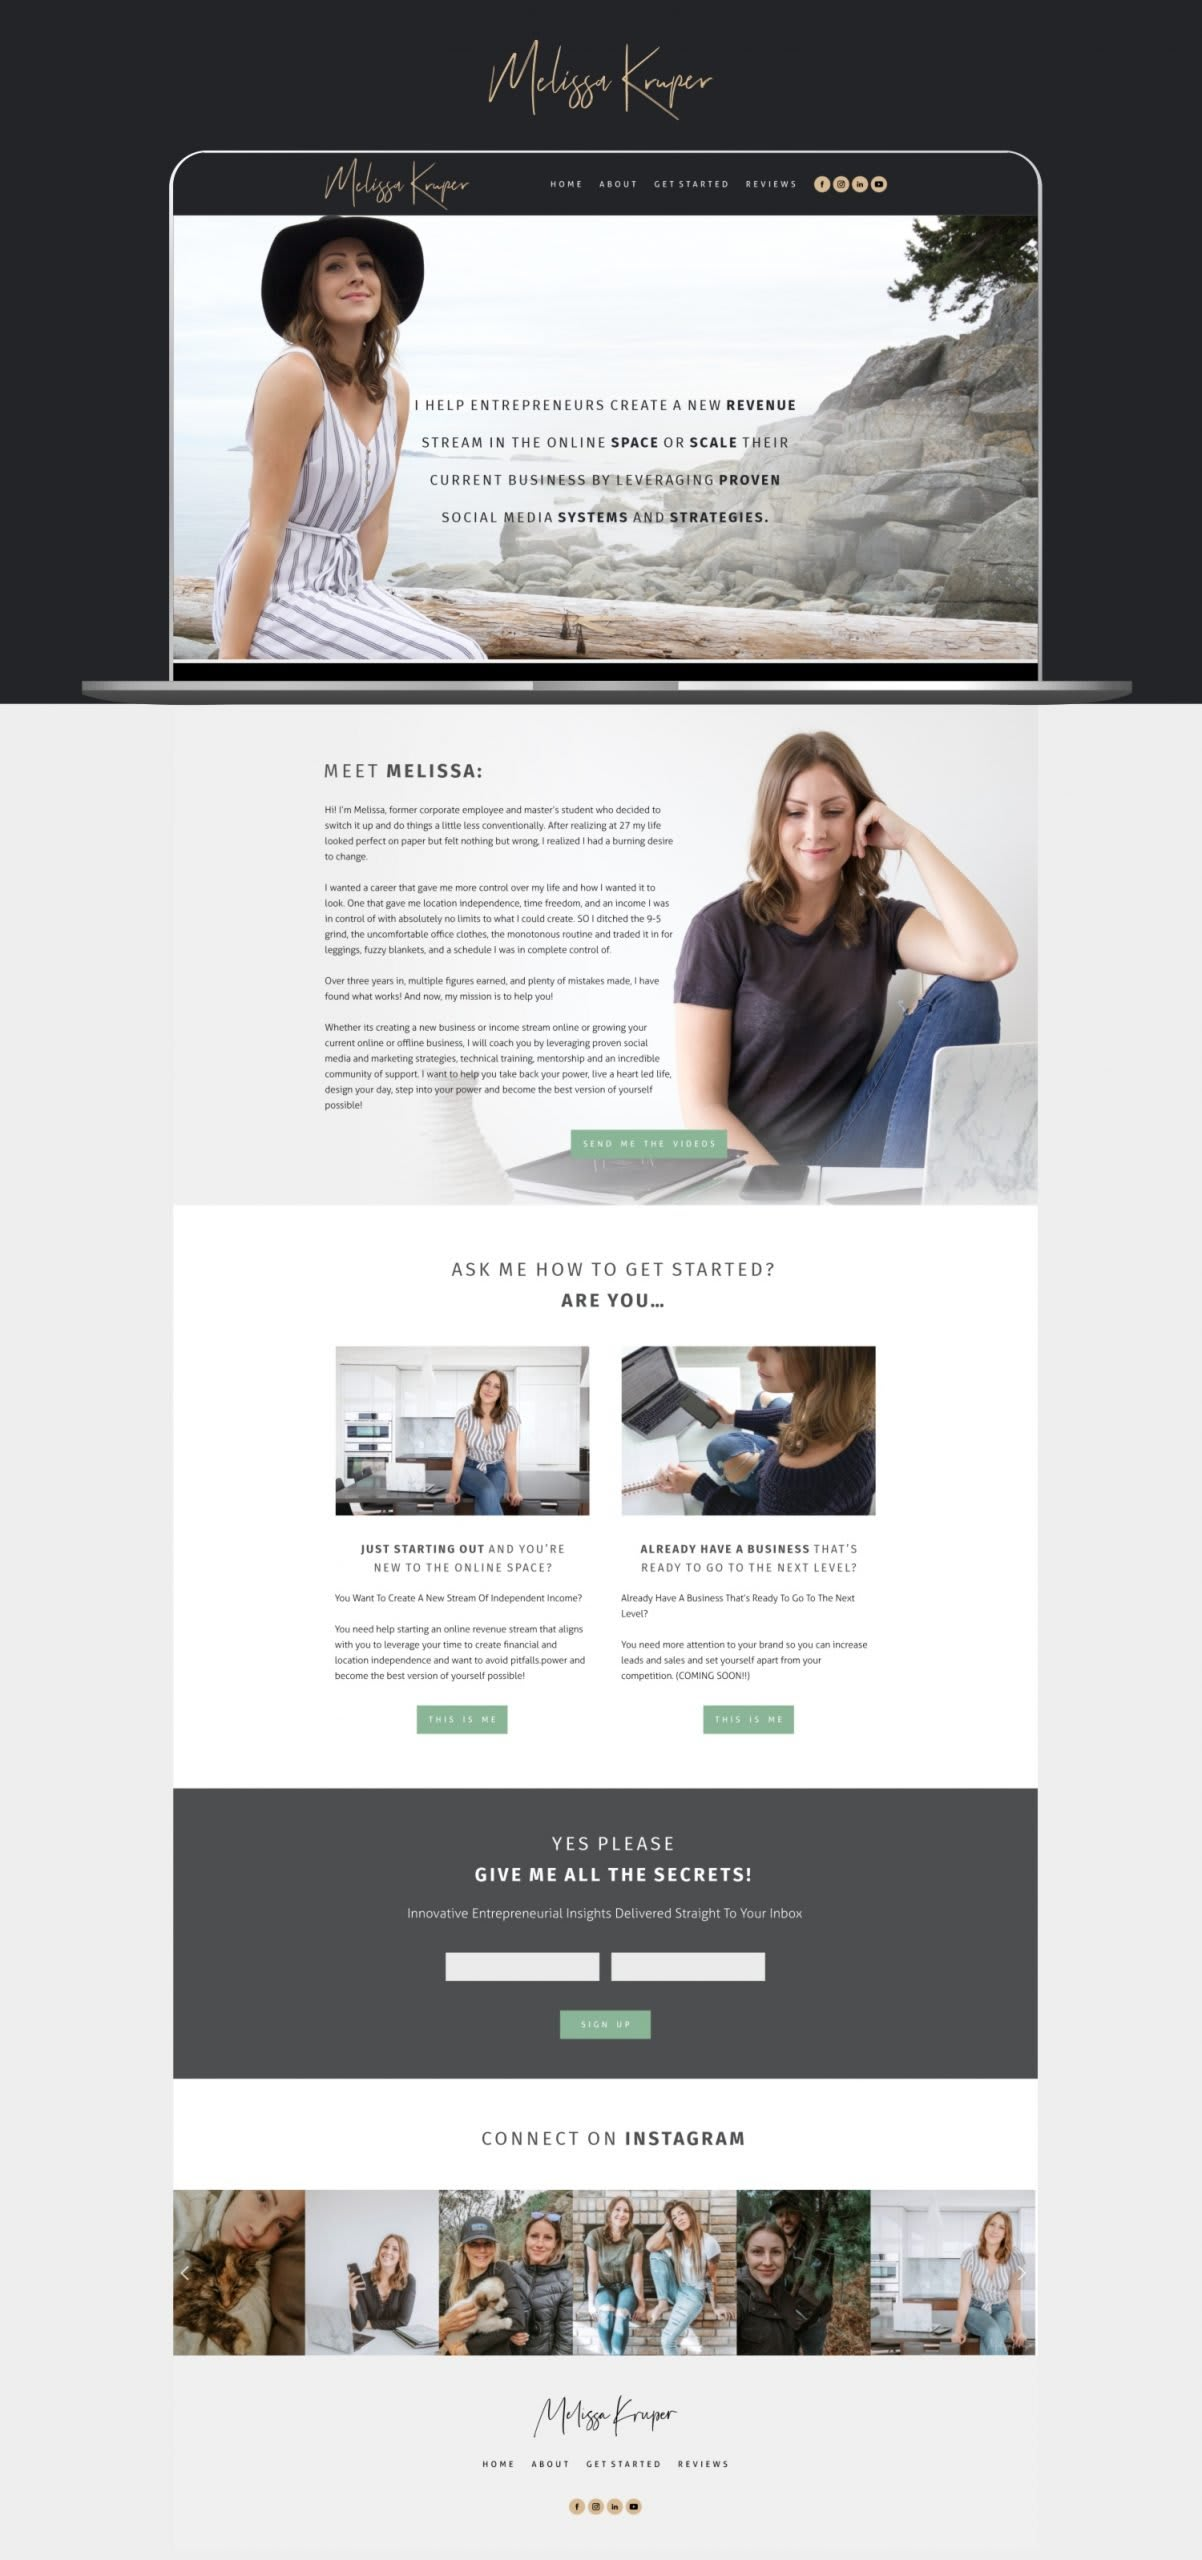 Melissa-Kruper-Website-mockup-scaled.jpg